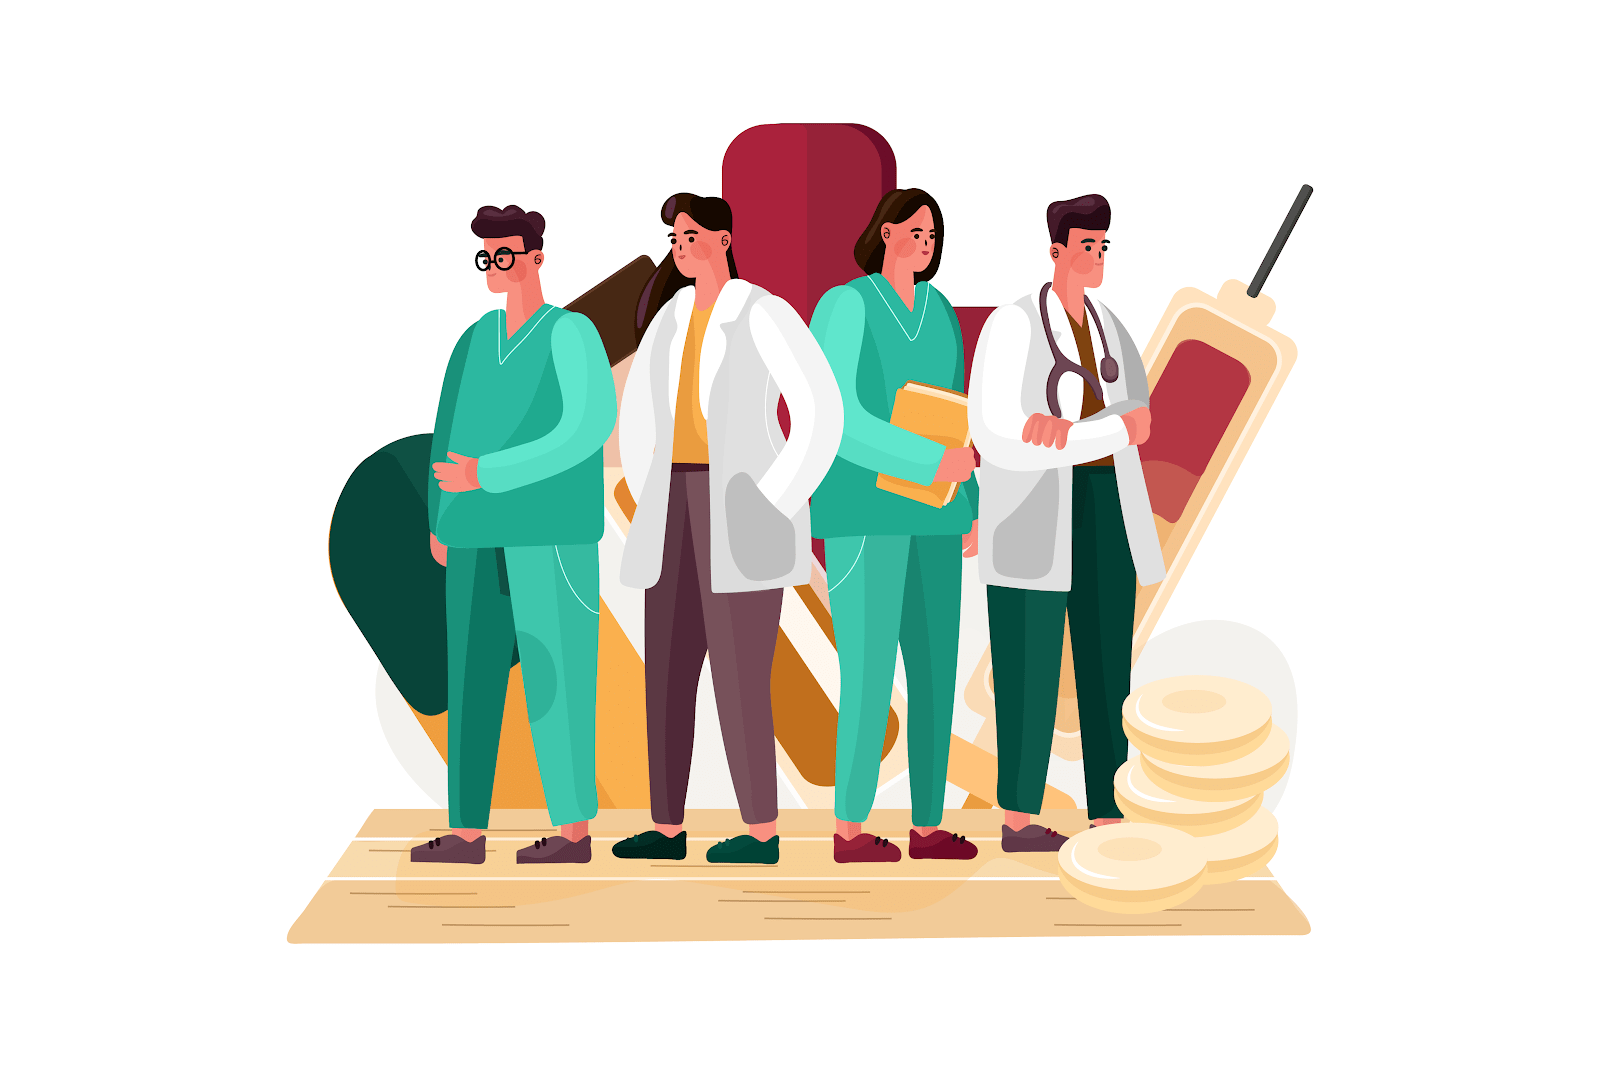 Medical workers - animation